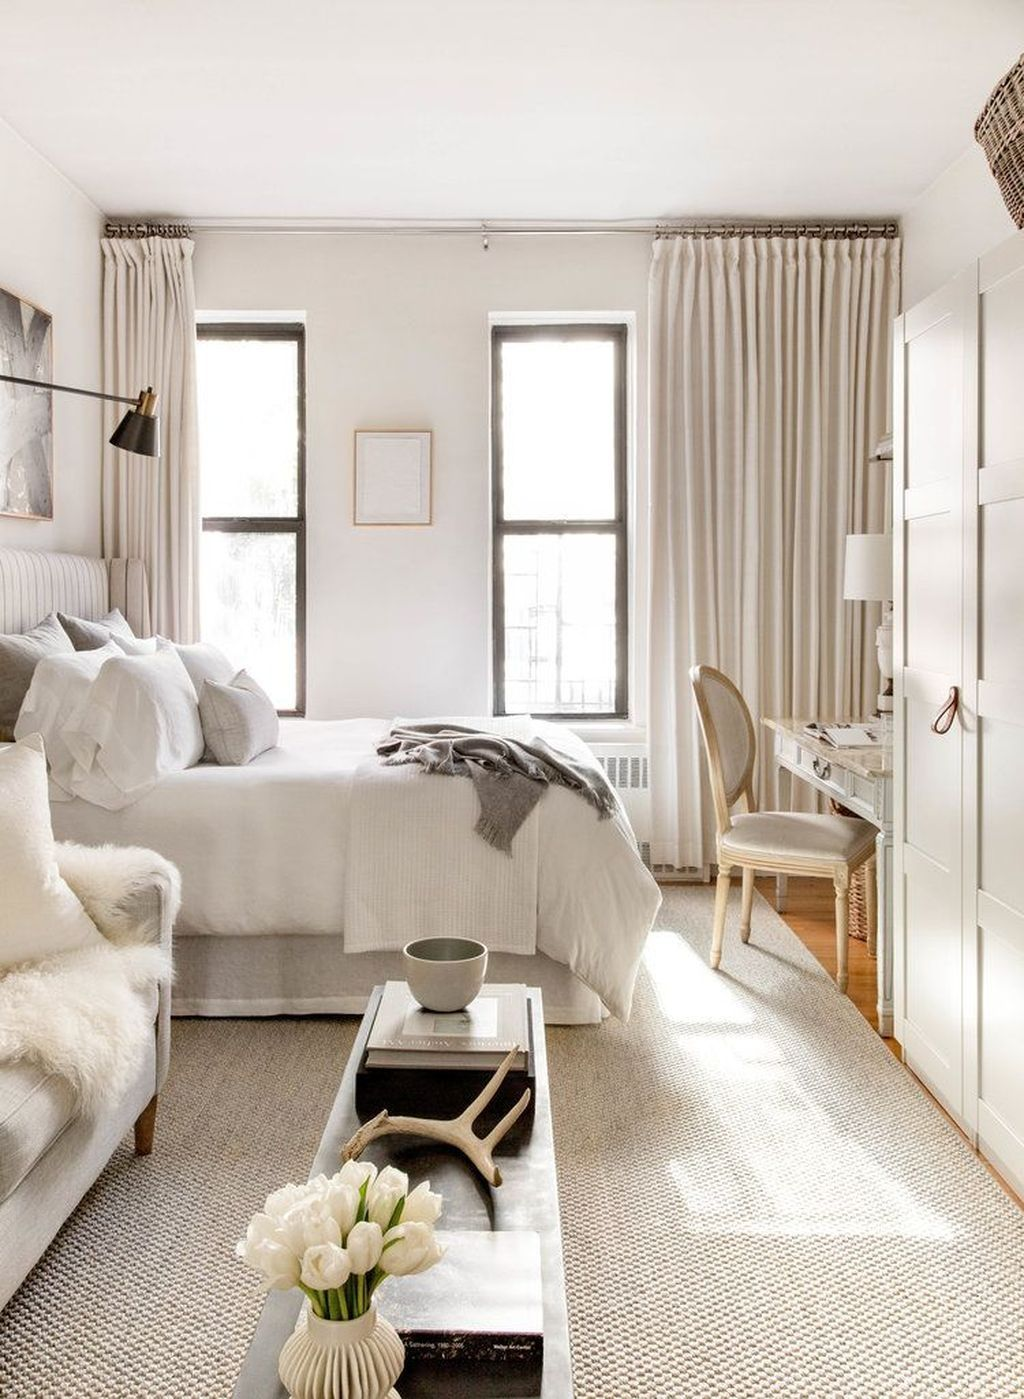 34 Delicate Tiny Apartment Design Ideas That Are So ...